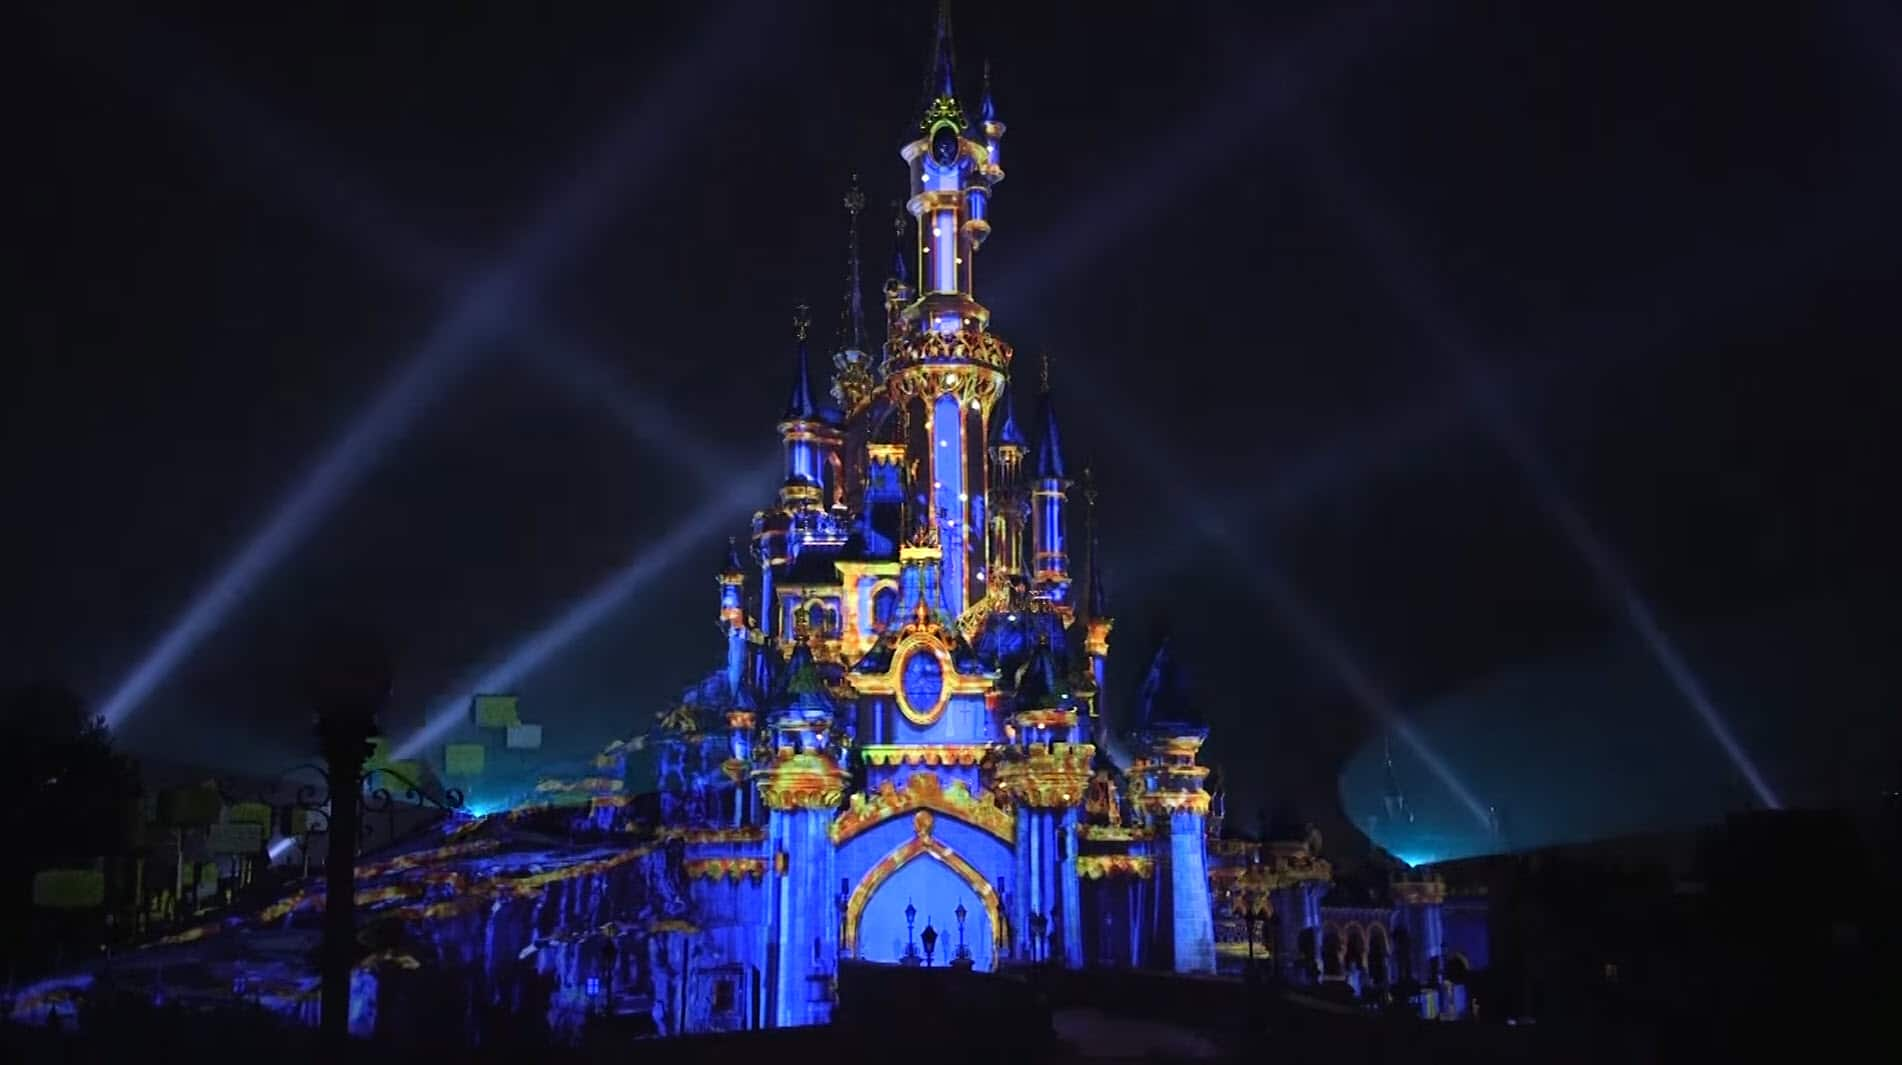 Disney: Behind The Scenes At Disneyland Paris' New Nighttime Show